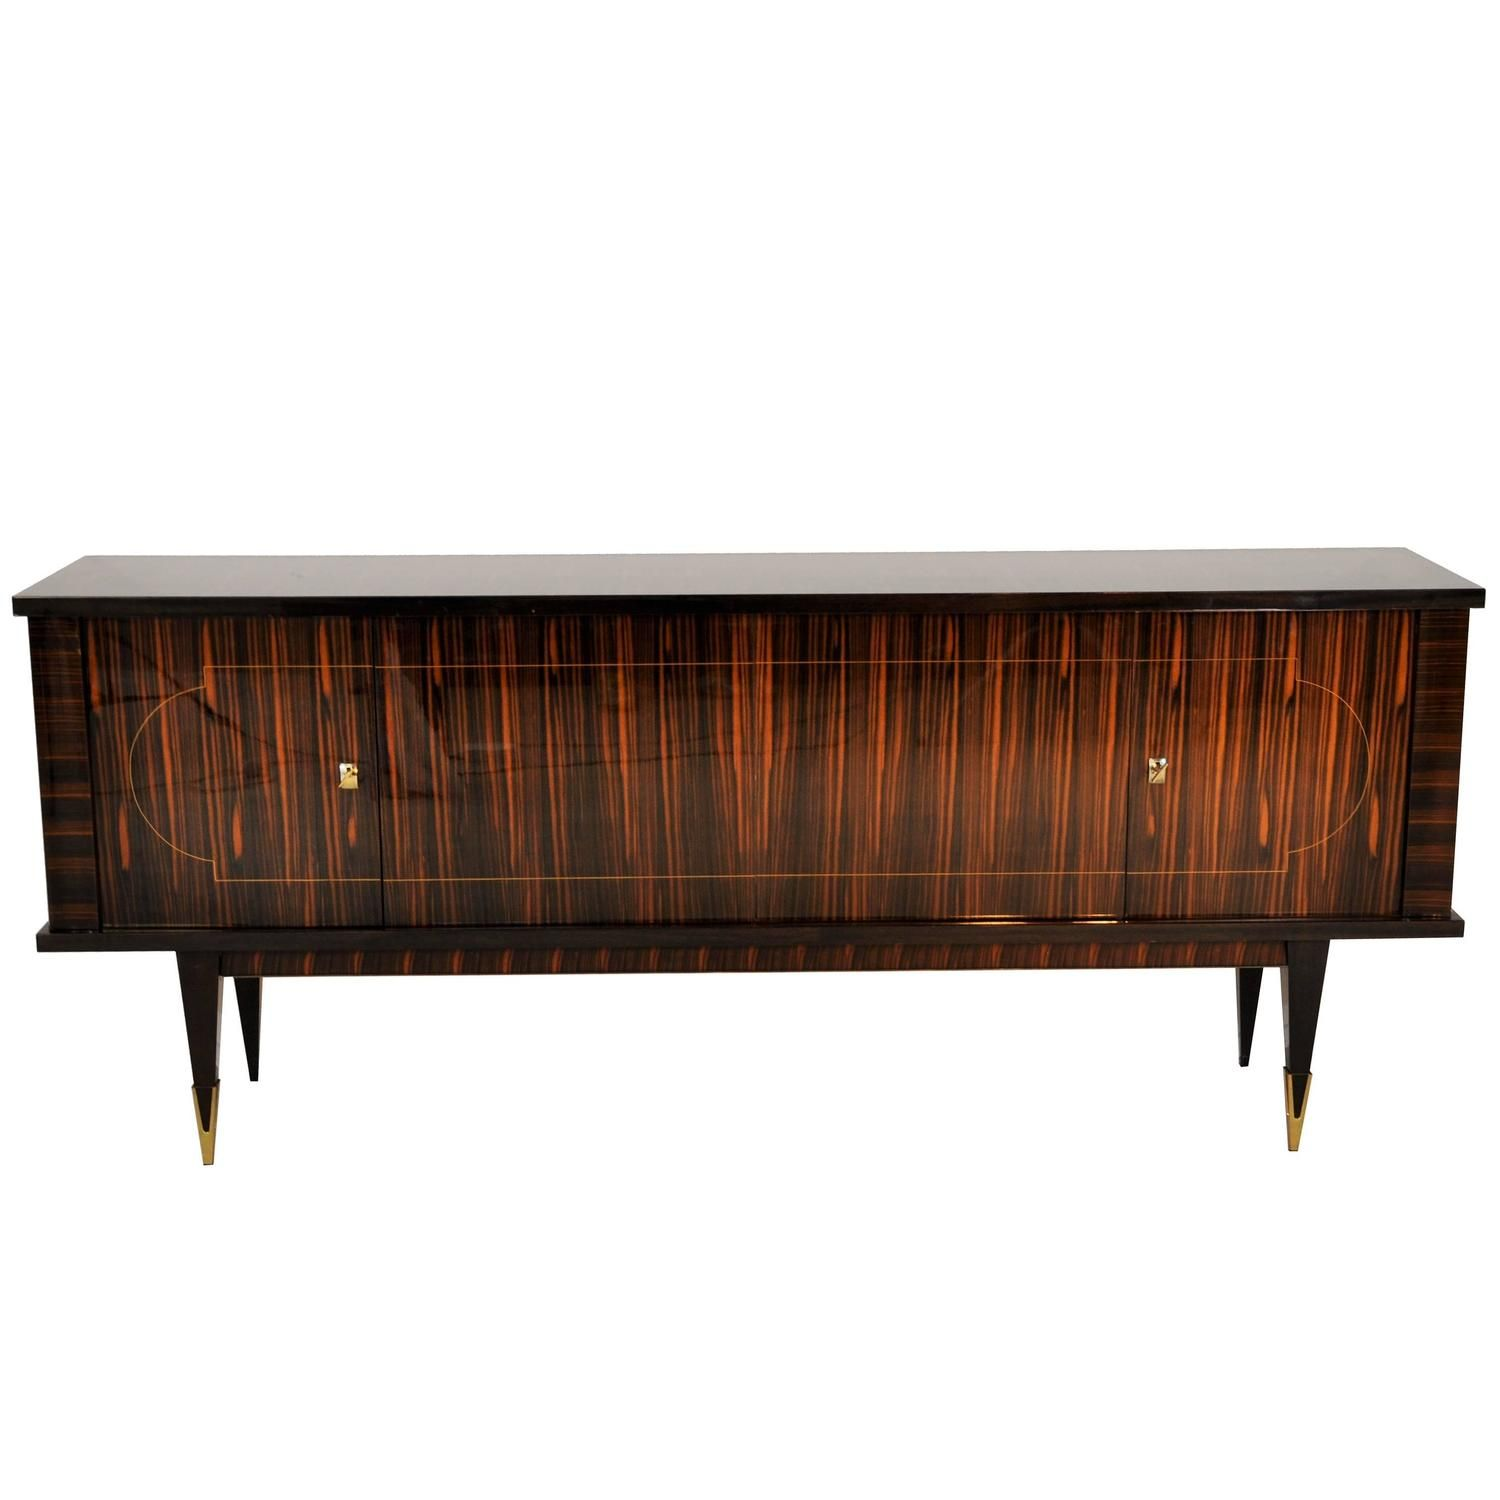 1920s Art Deco Macassar Sideboard from France